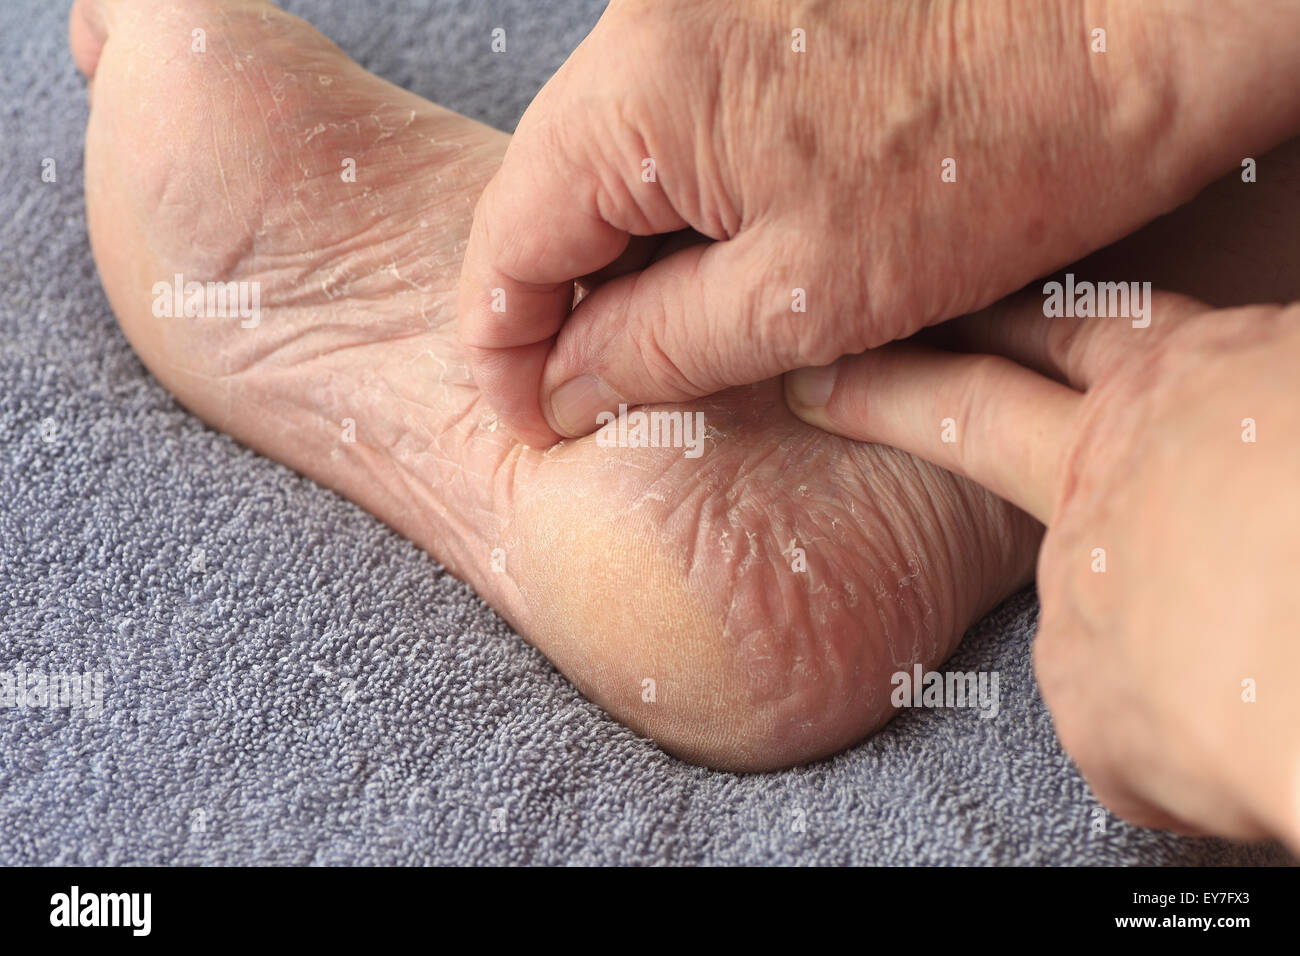 Athletes Foot Infection Stock Photos & Athletes Foot Infection ...